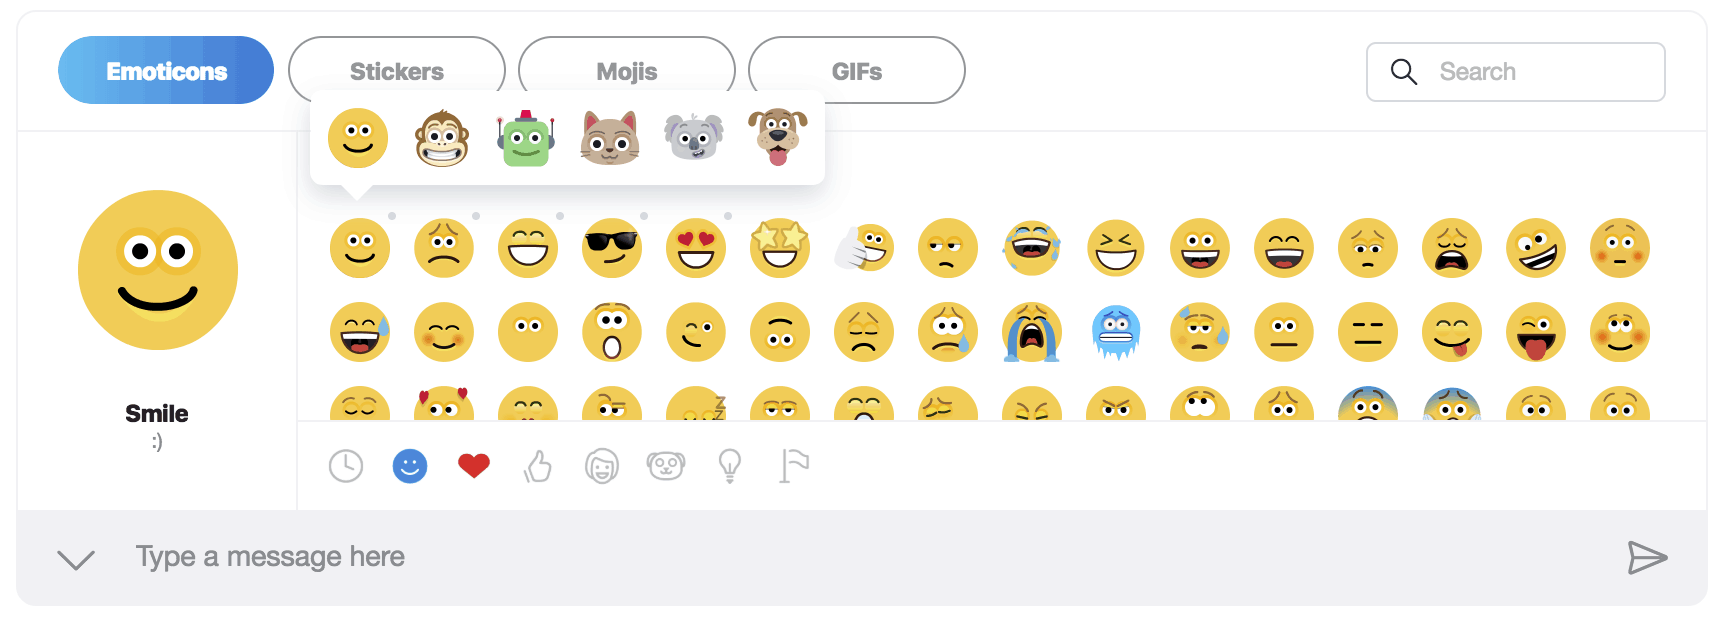 Skype Insider app picks up personalized emoticons and improved mobile call experience OnMSFT.com February 1, 2019